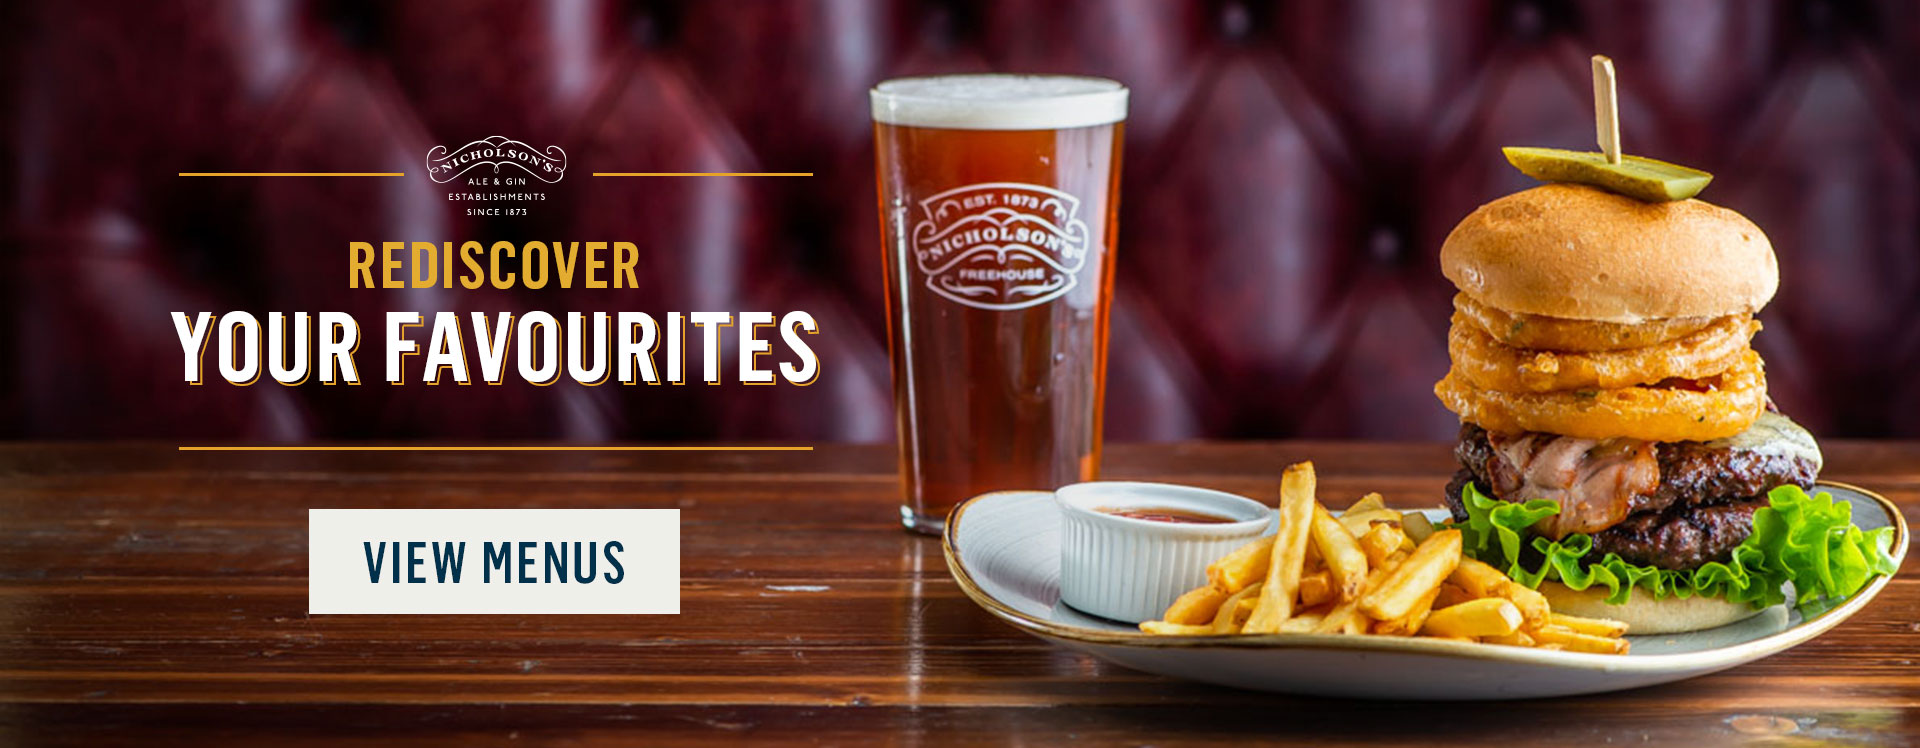 Rediscover your favourites at The Walrus and The Carpenter